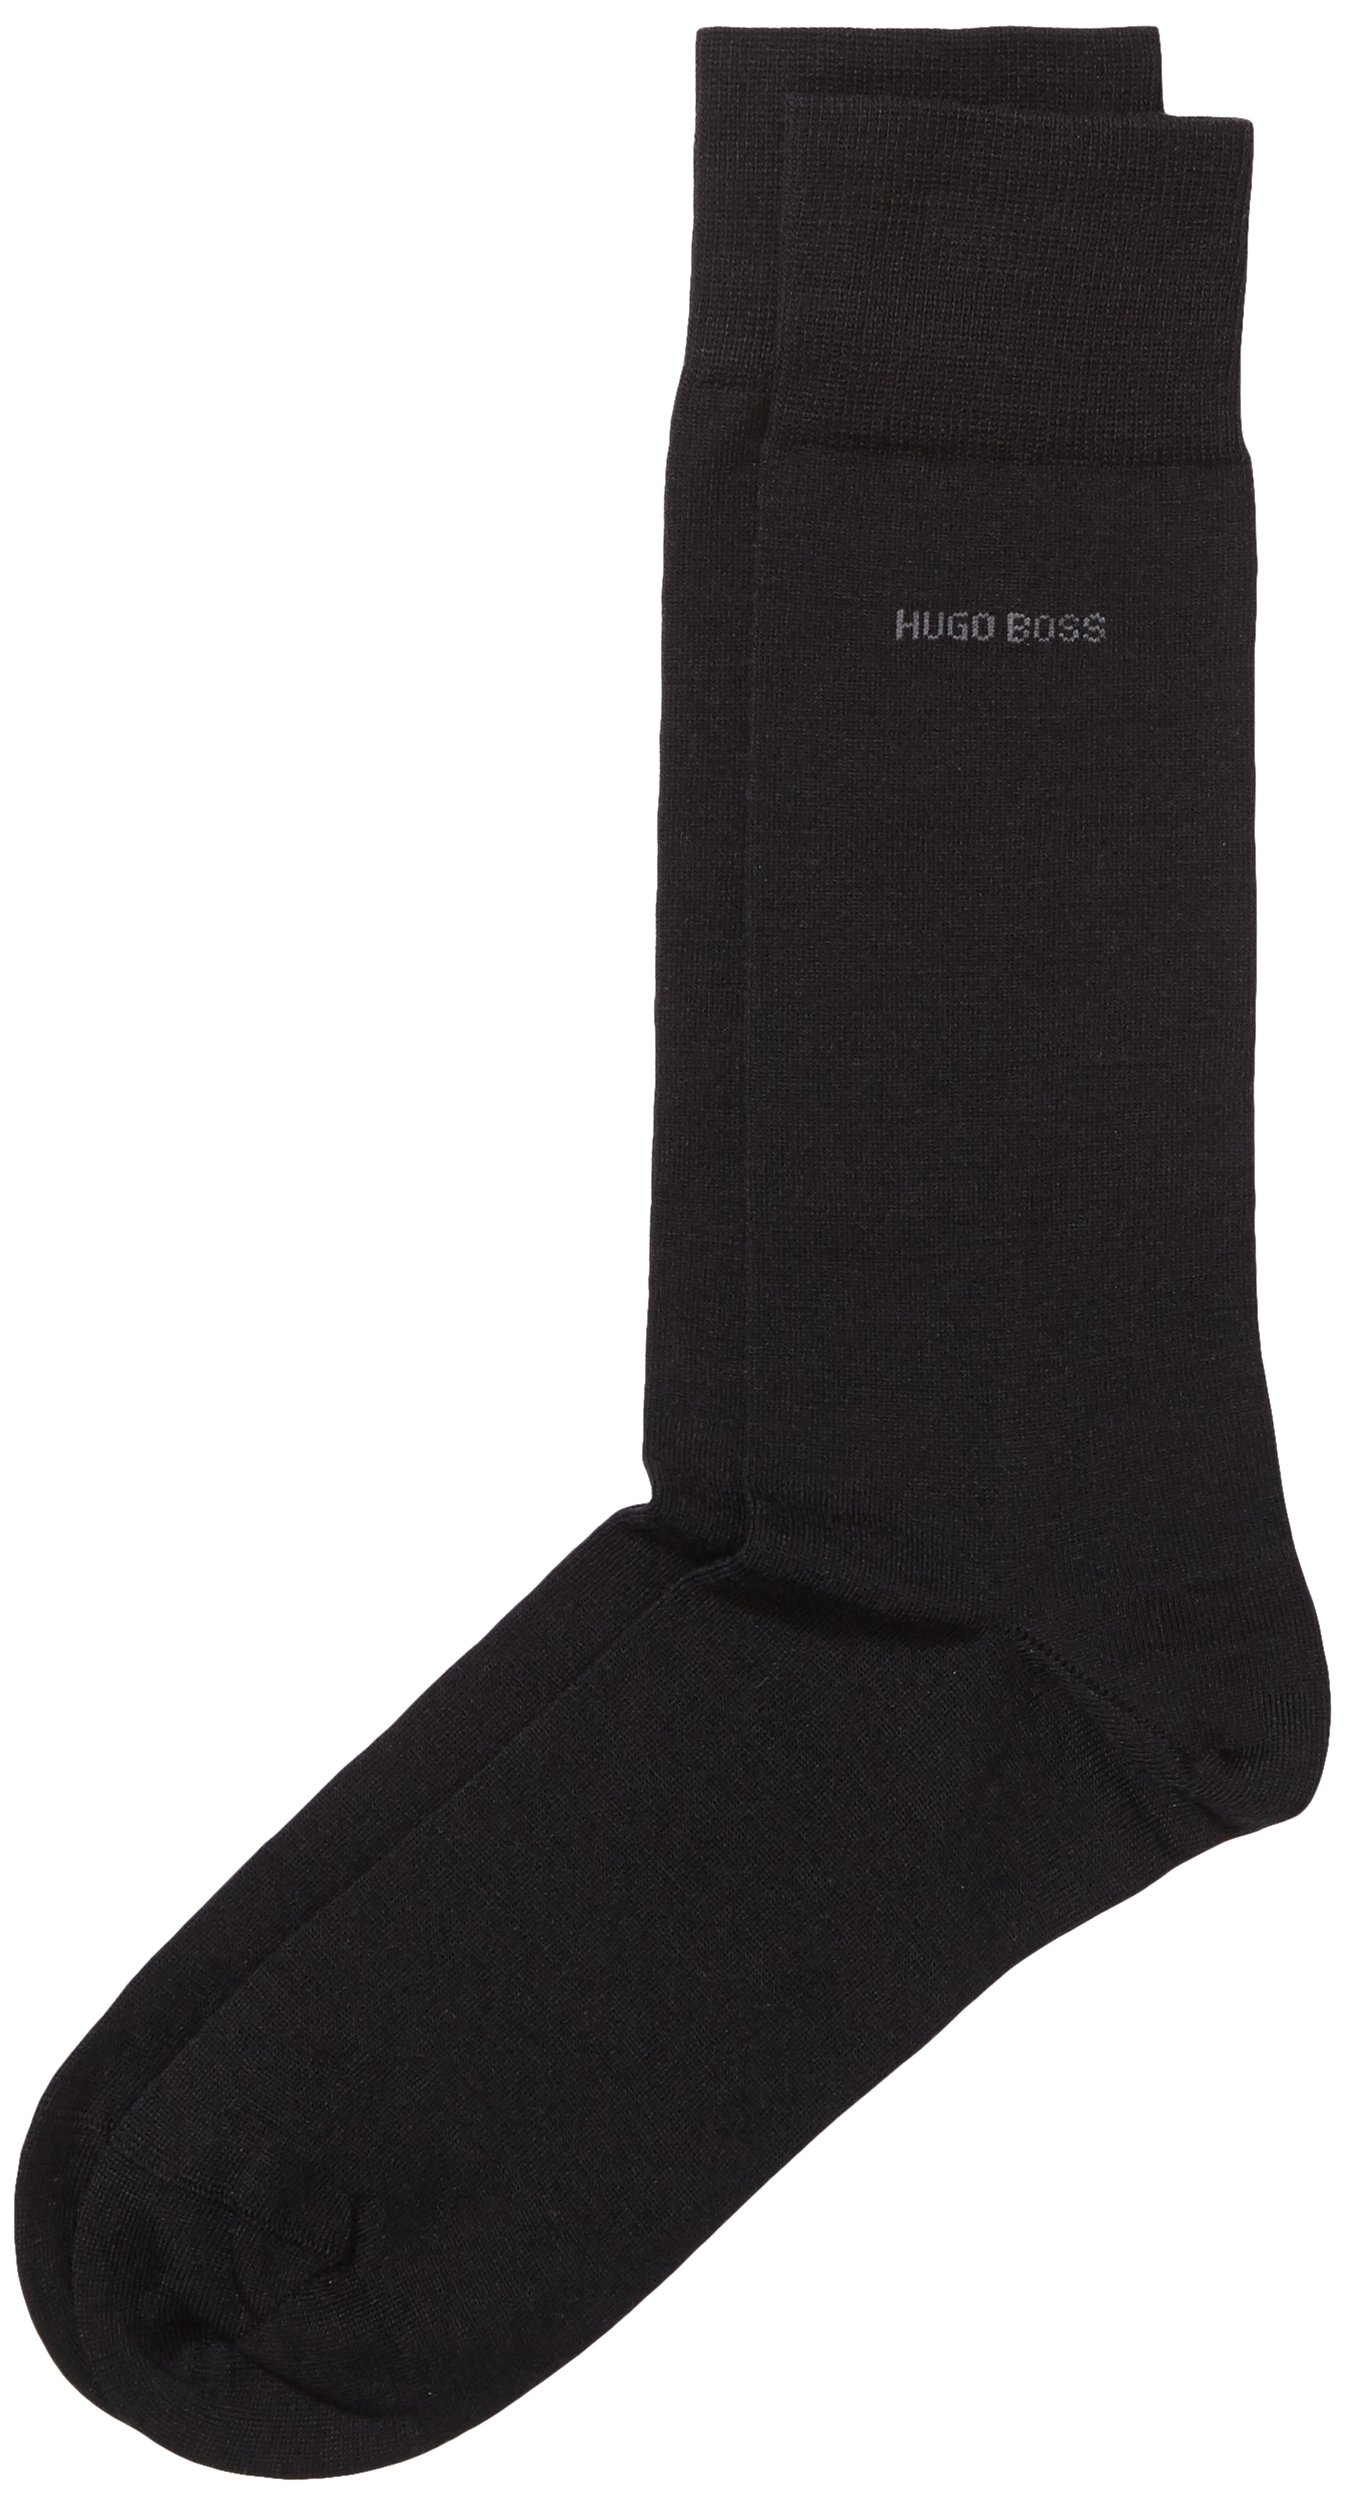 Hugo Boss Men's 1 Pair John Plain Finest Wool and Soft Cotton Socks 9.5-10.5 Black